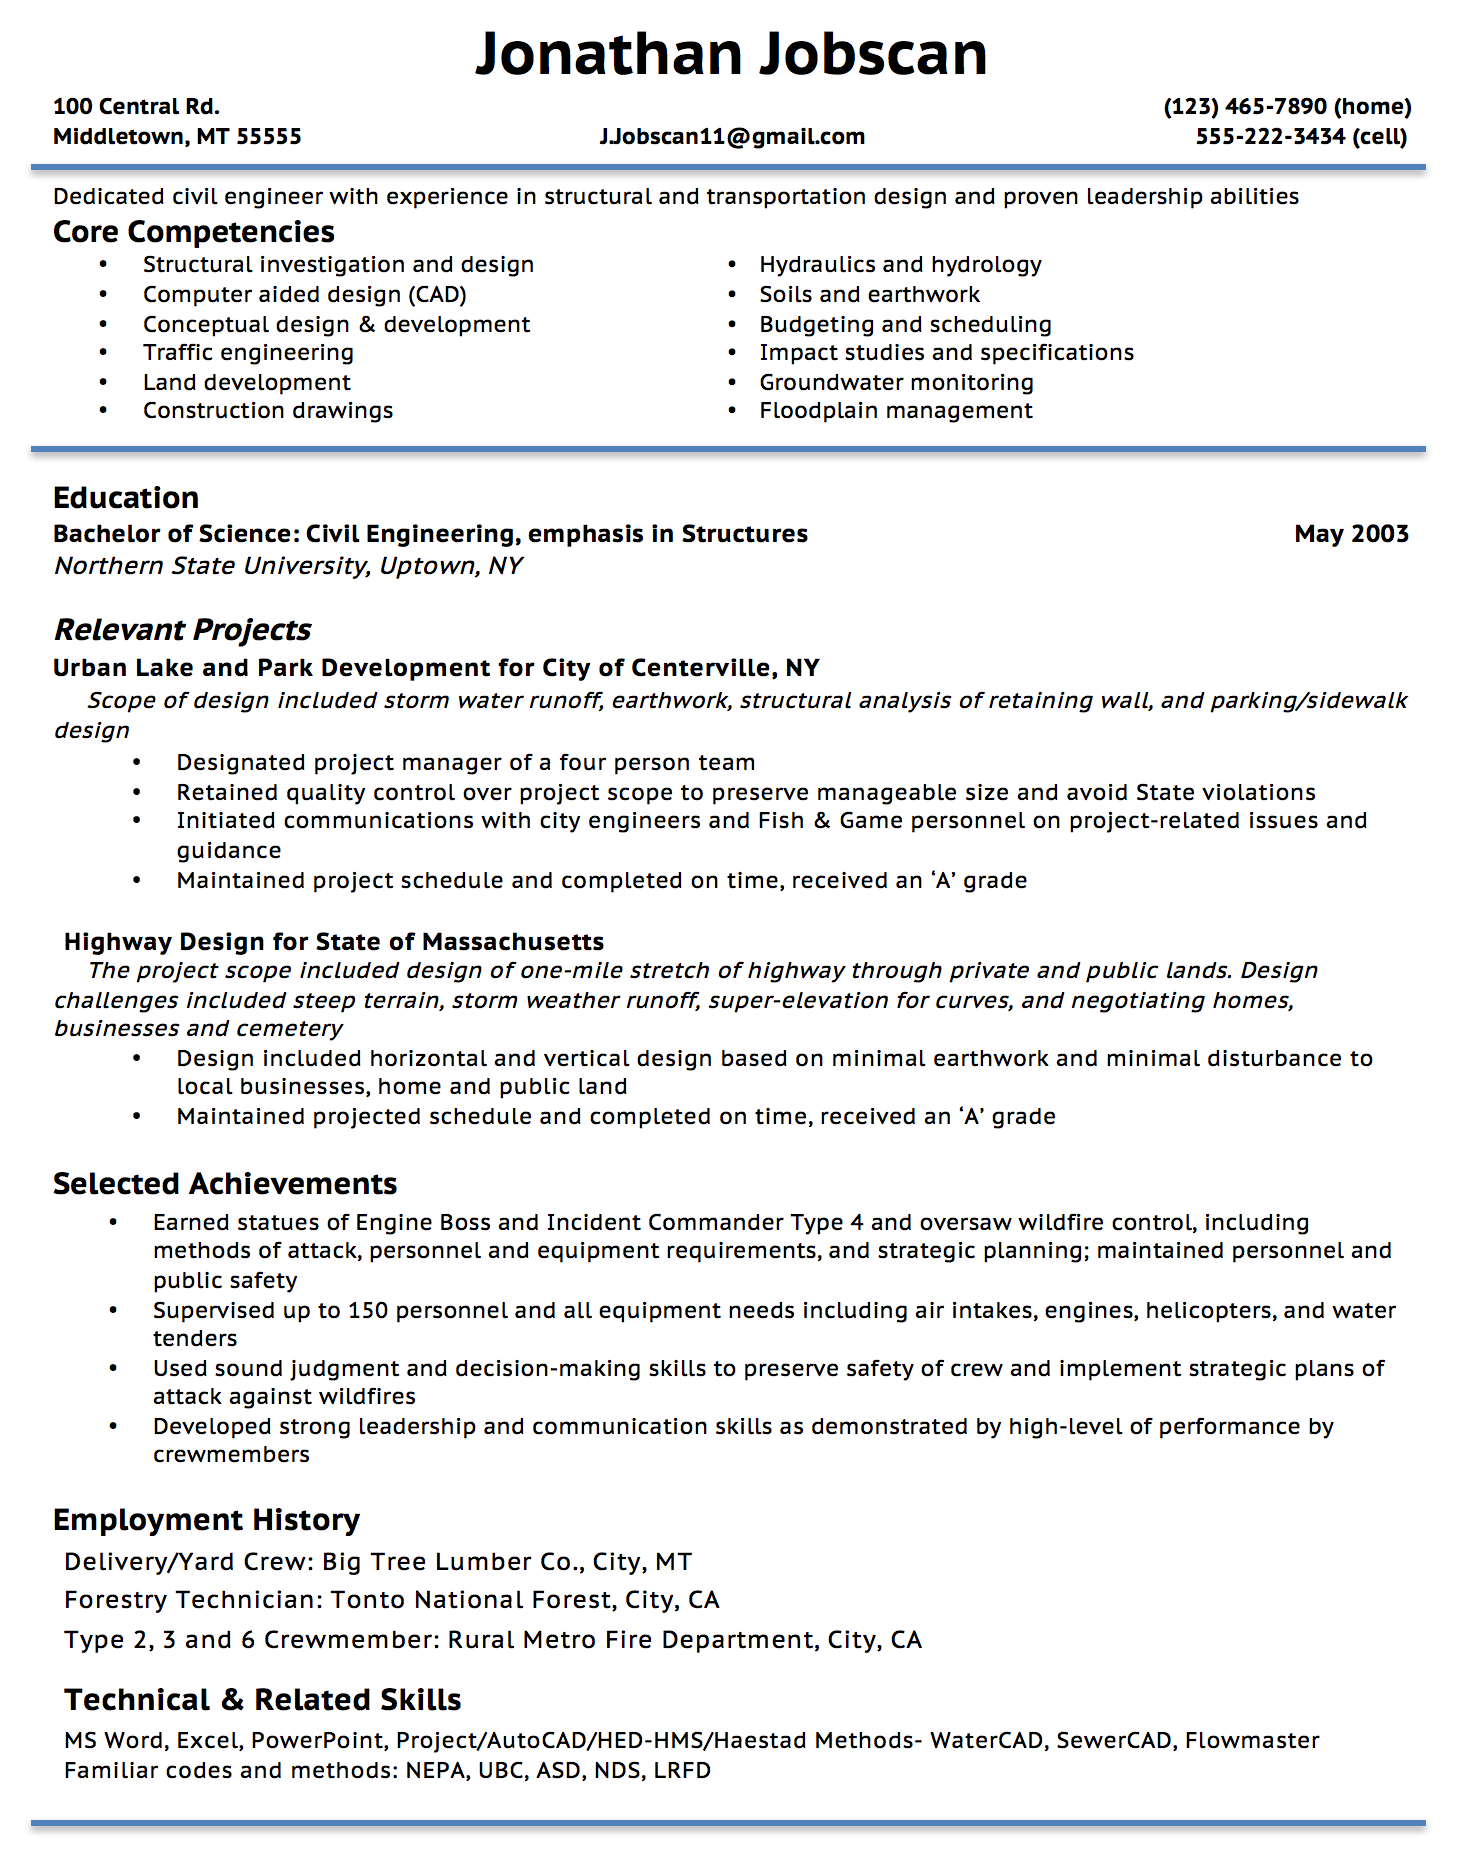 Opposenewapstandardsus  Splendid Resume Writing Guide  Jobscan With Licious Example Of A Functional Resume Format With Cool Unique Resume Template Also How To Write A Sales Resume In Addition Recruiter Resume Examples And Acting Resume Samples As Well As Resume Sheet Additionally Write A Great Resume From Jobscanco With Opposenewapstandardsus  Licious Resume Writing Guide  Jobscan With Cool Example Of A Functional Resume Format And Splendid Unique Resume Template Also How To Write A Sales Resume In Addition Recruiter Resume Examples From Jobscanco